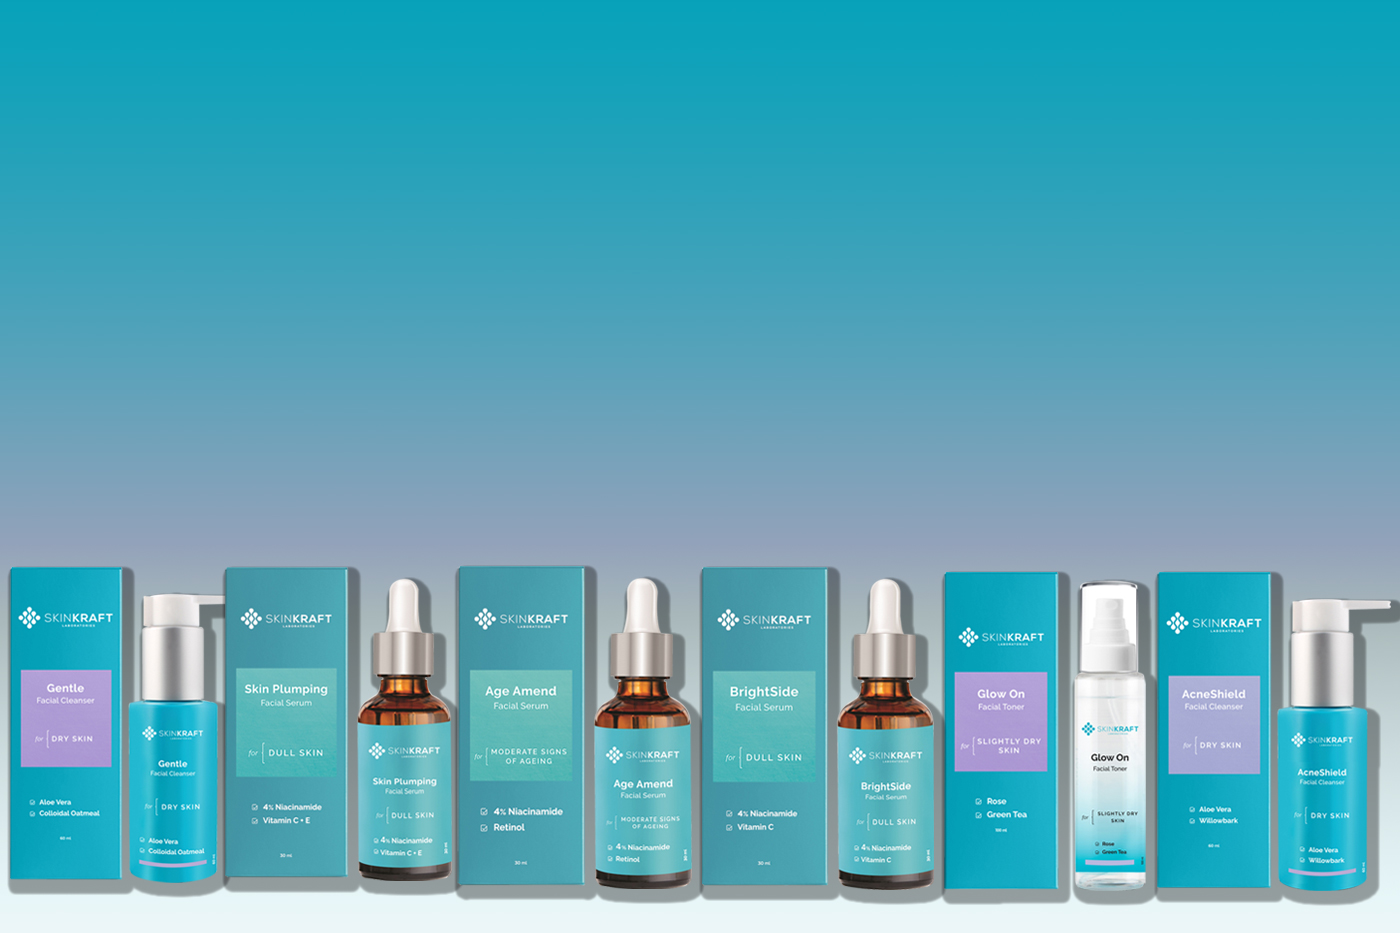 SkinKraft adds 20 products to the skincare product line